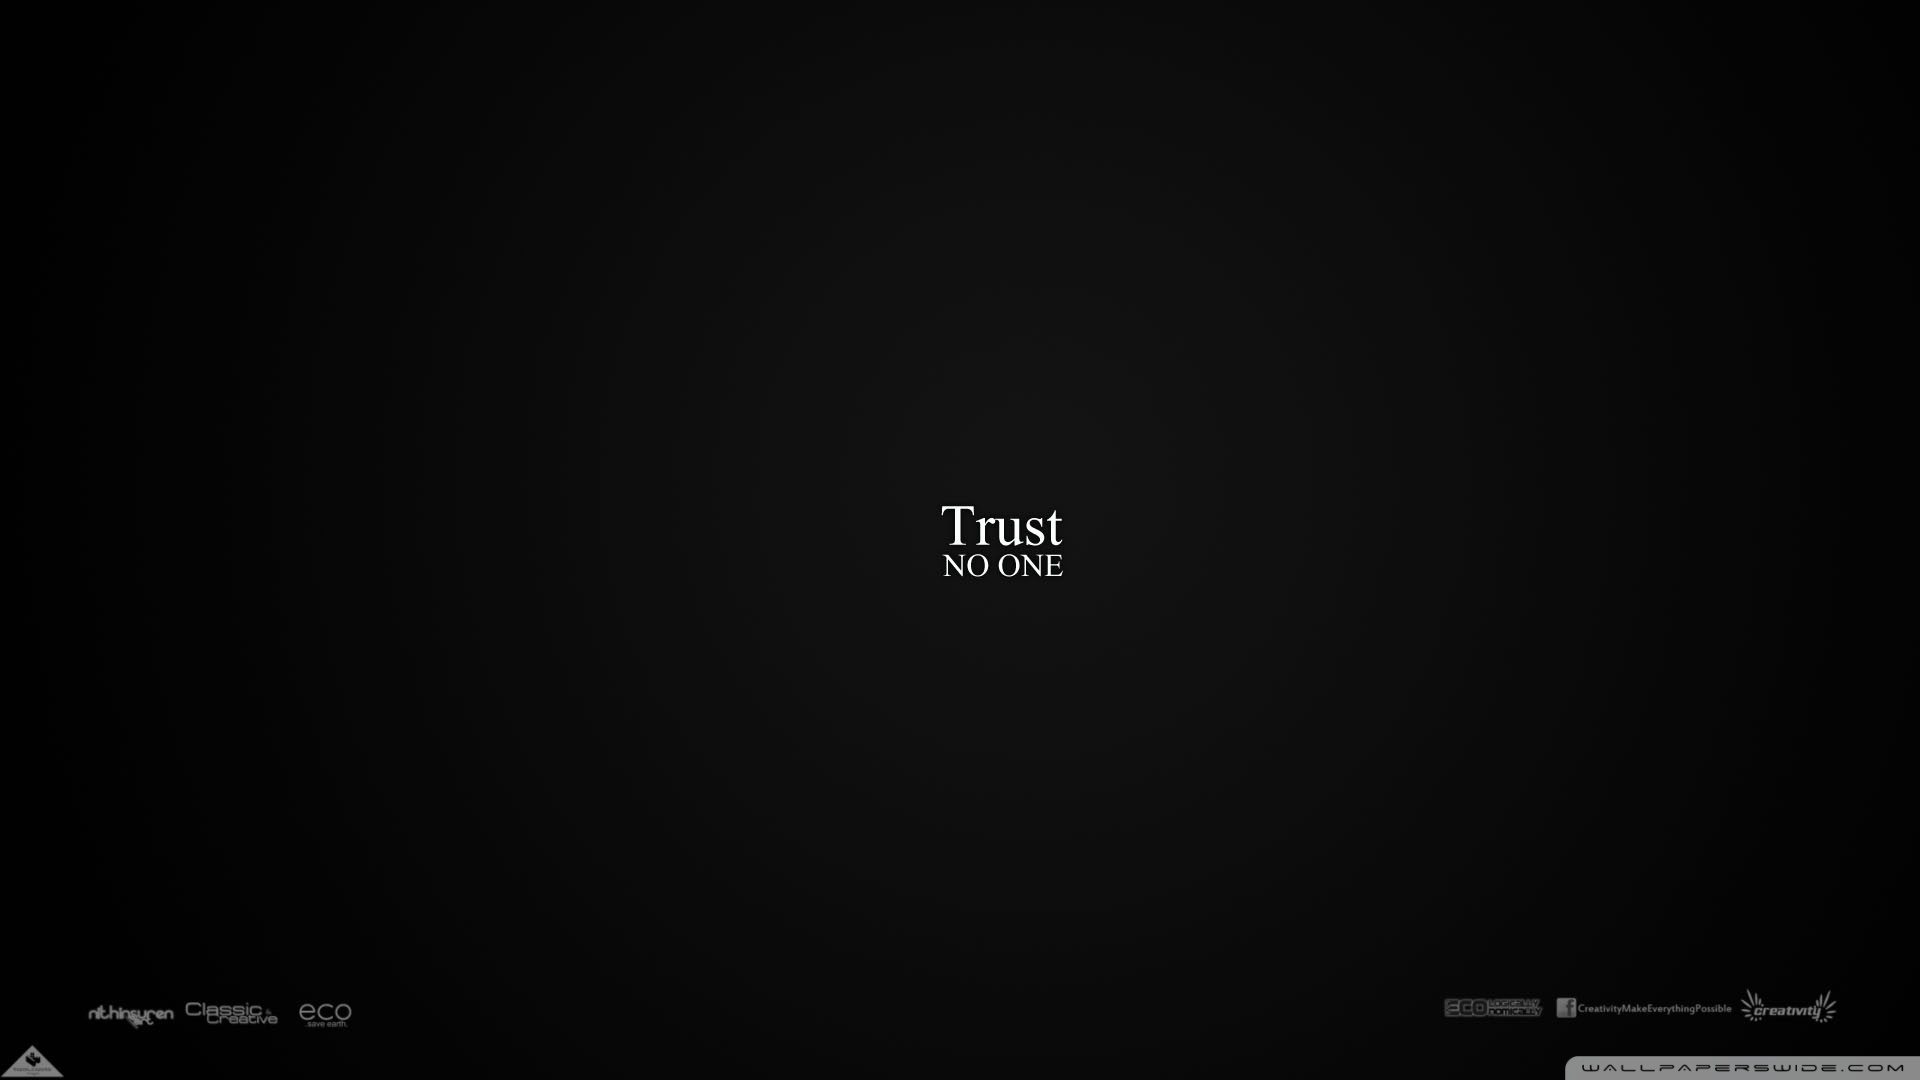 trust no one ❤ 4k hd desktop wallpaper for 4k ultra hd tv • tablet